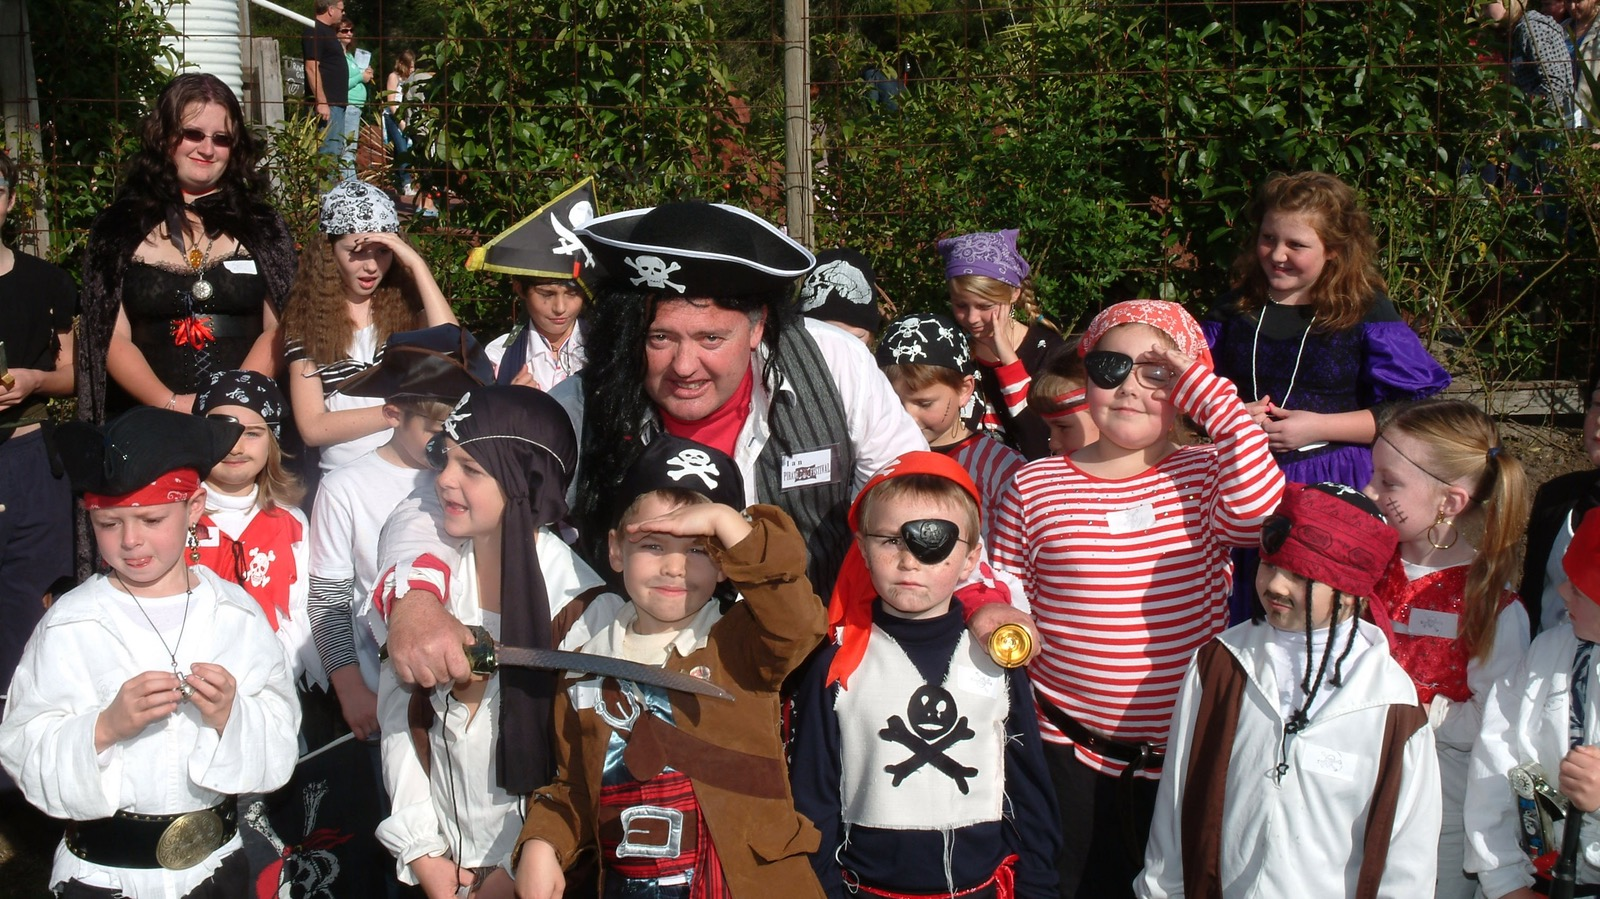 family fun  pirate  dress-up